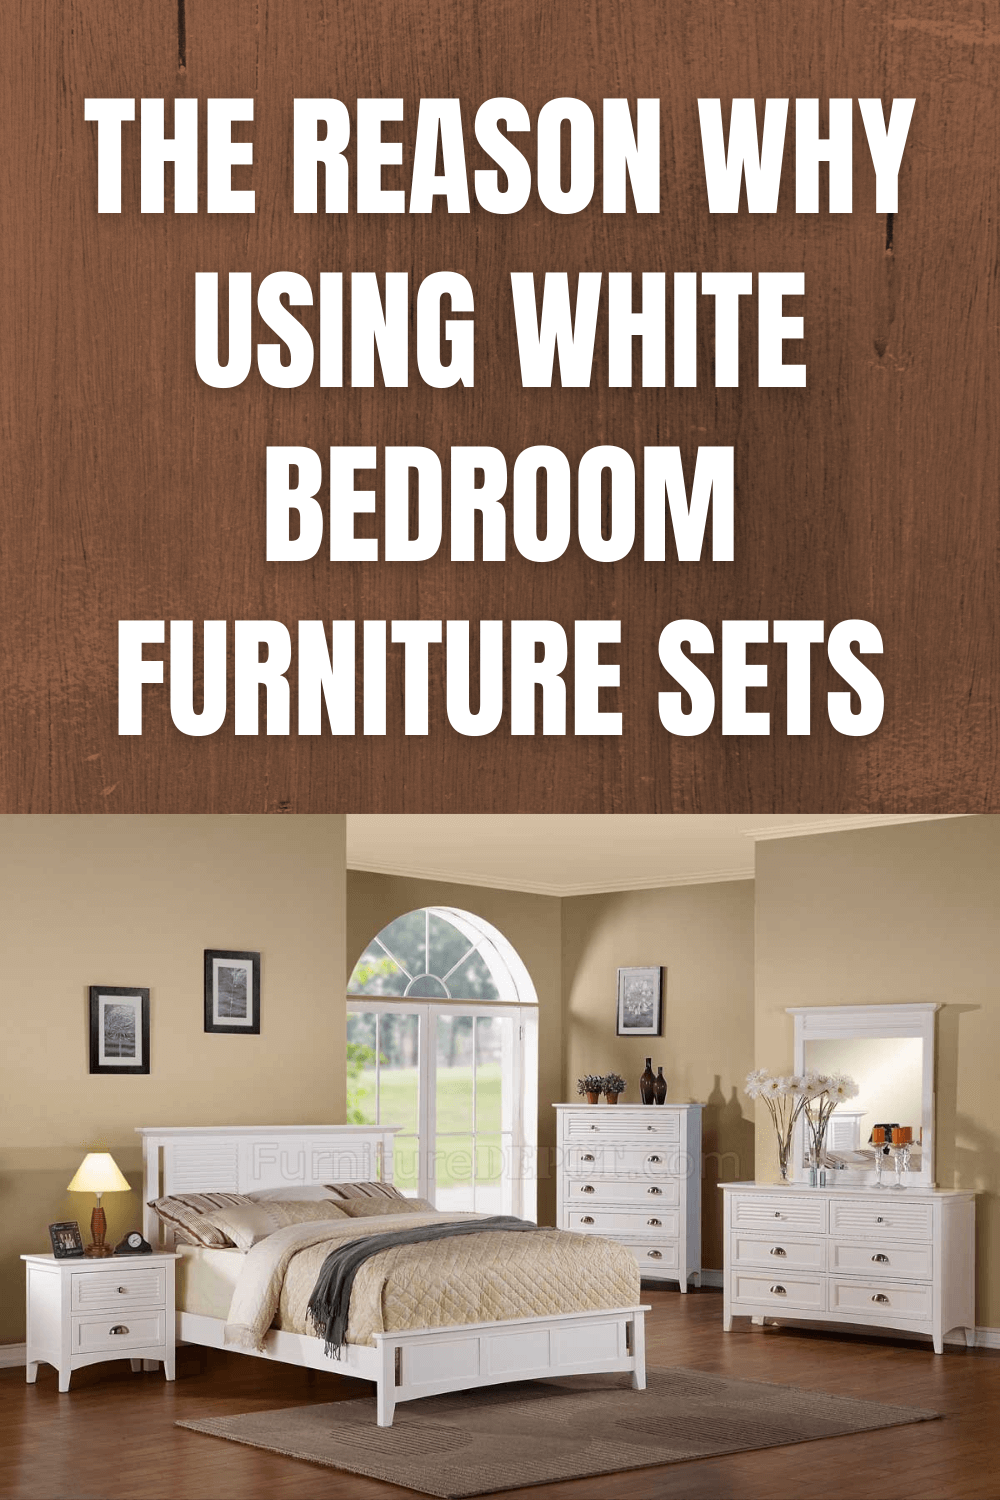 THE REASON WHY USING WHITE BEDROOM FURNITURE SETS